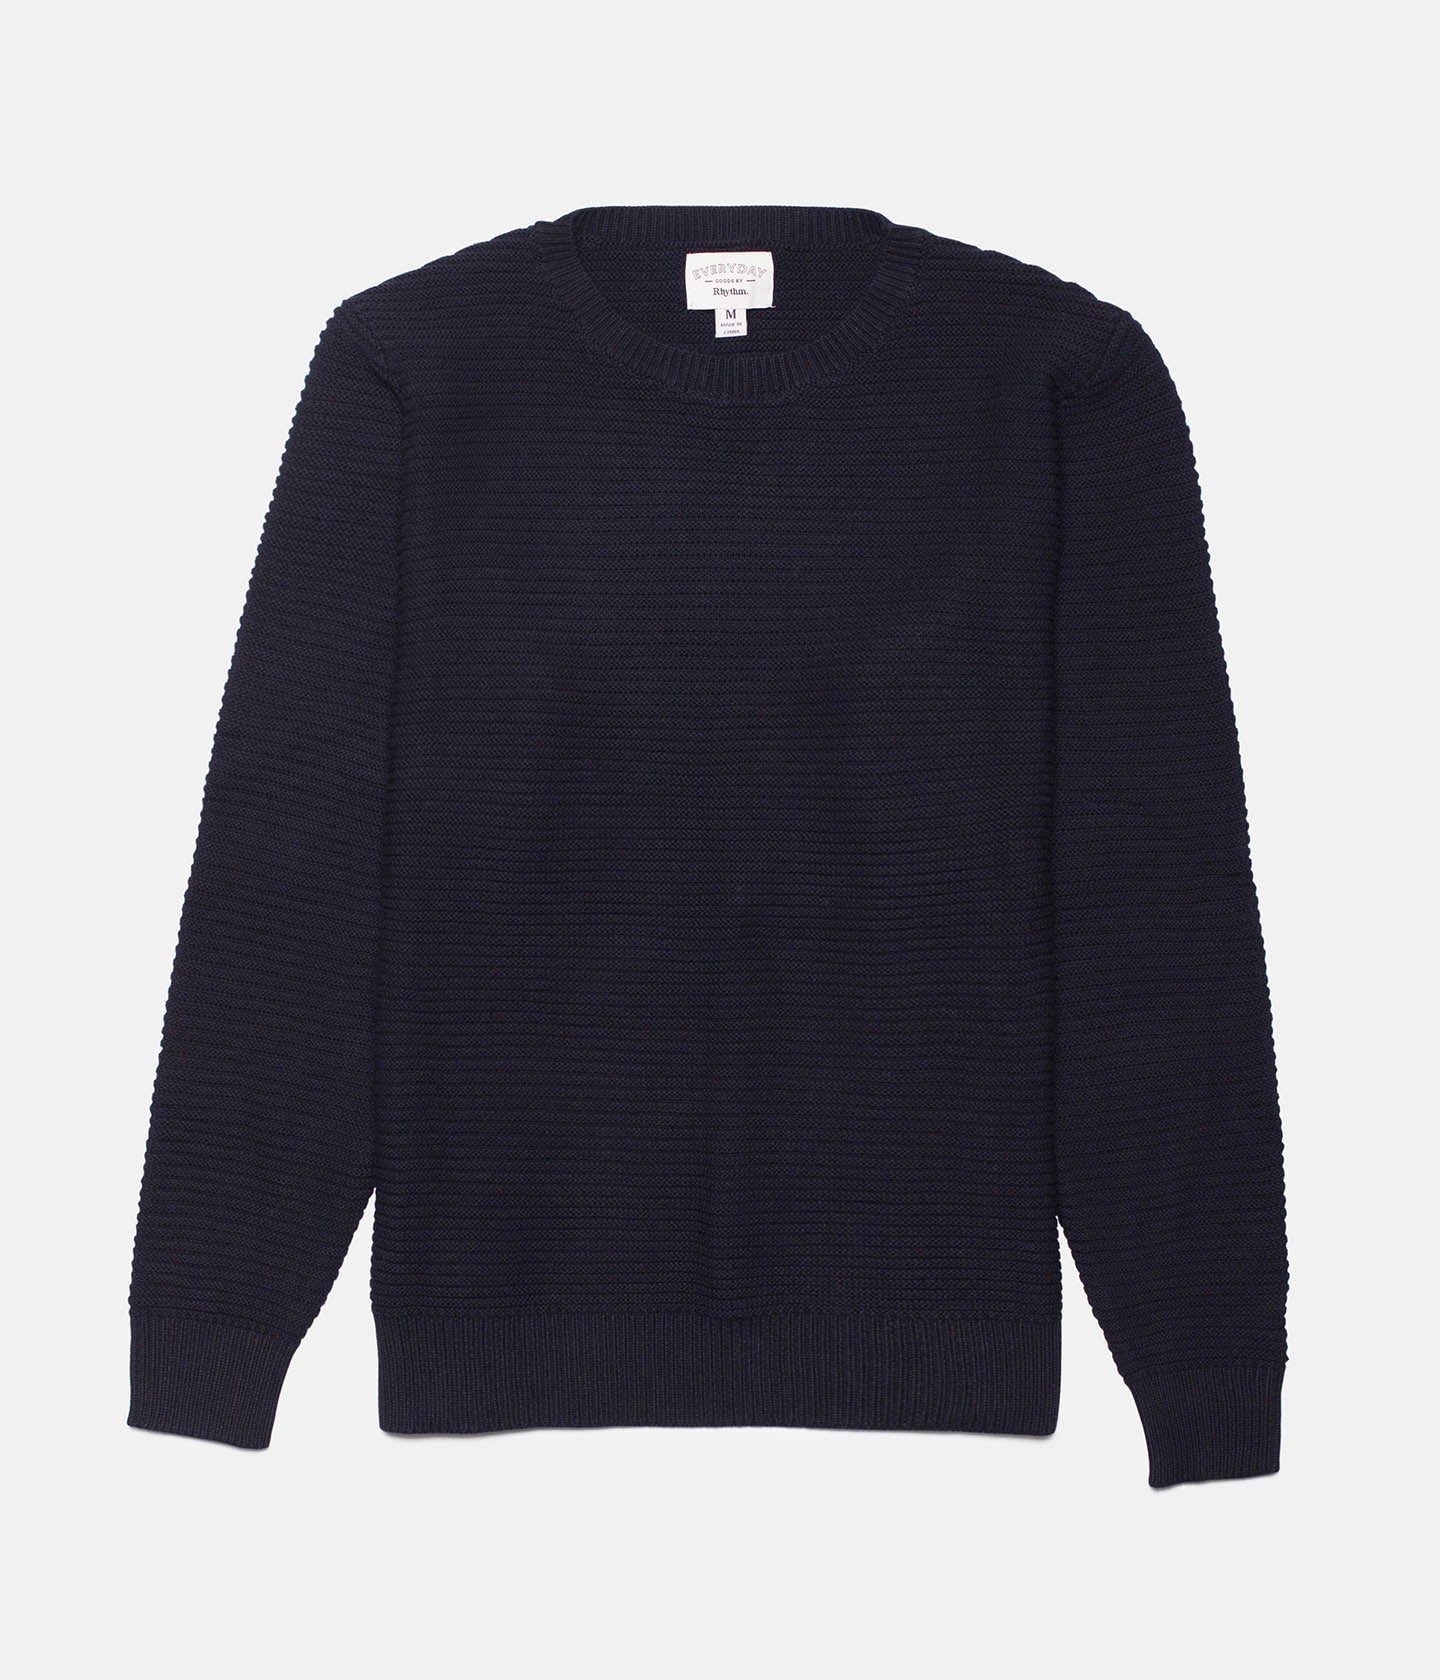 7f9dc58ecc6 FISHERMAN KNIT MIDNIGHT NAVY